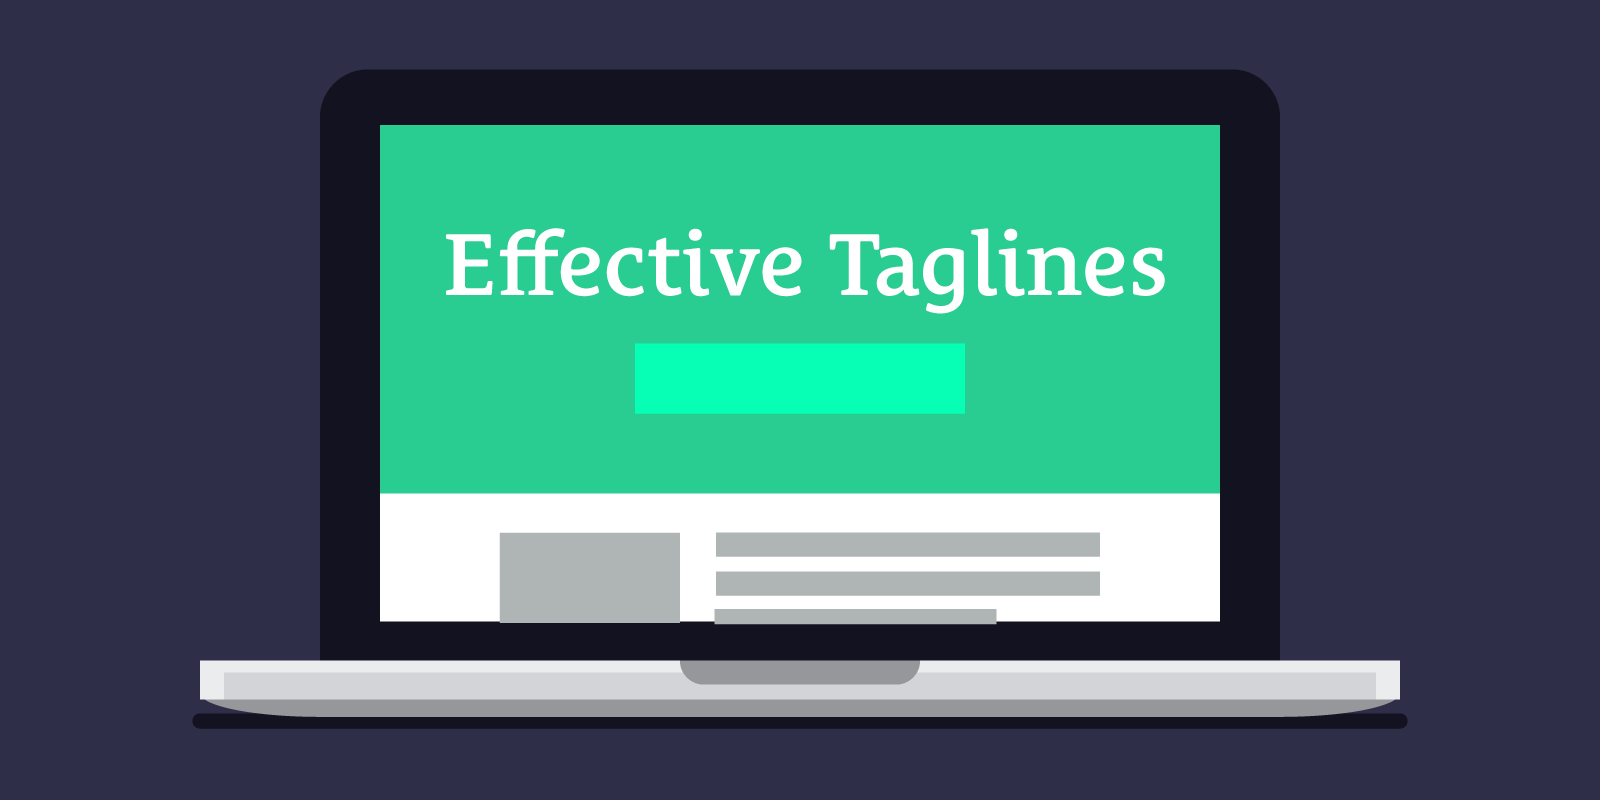 What Makes an Effective Tagline?